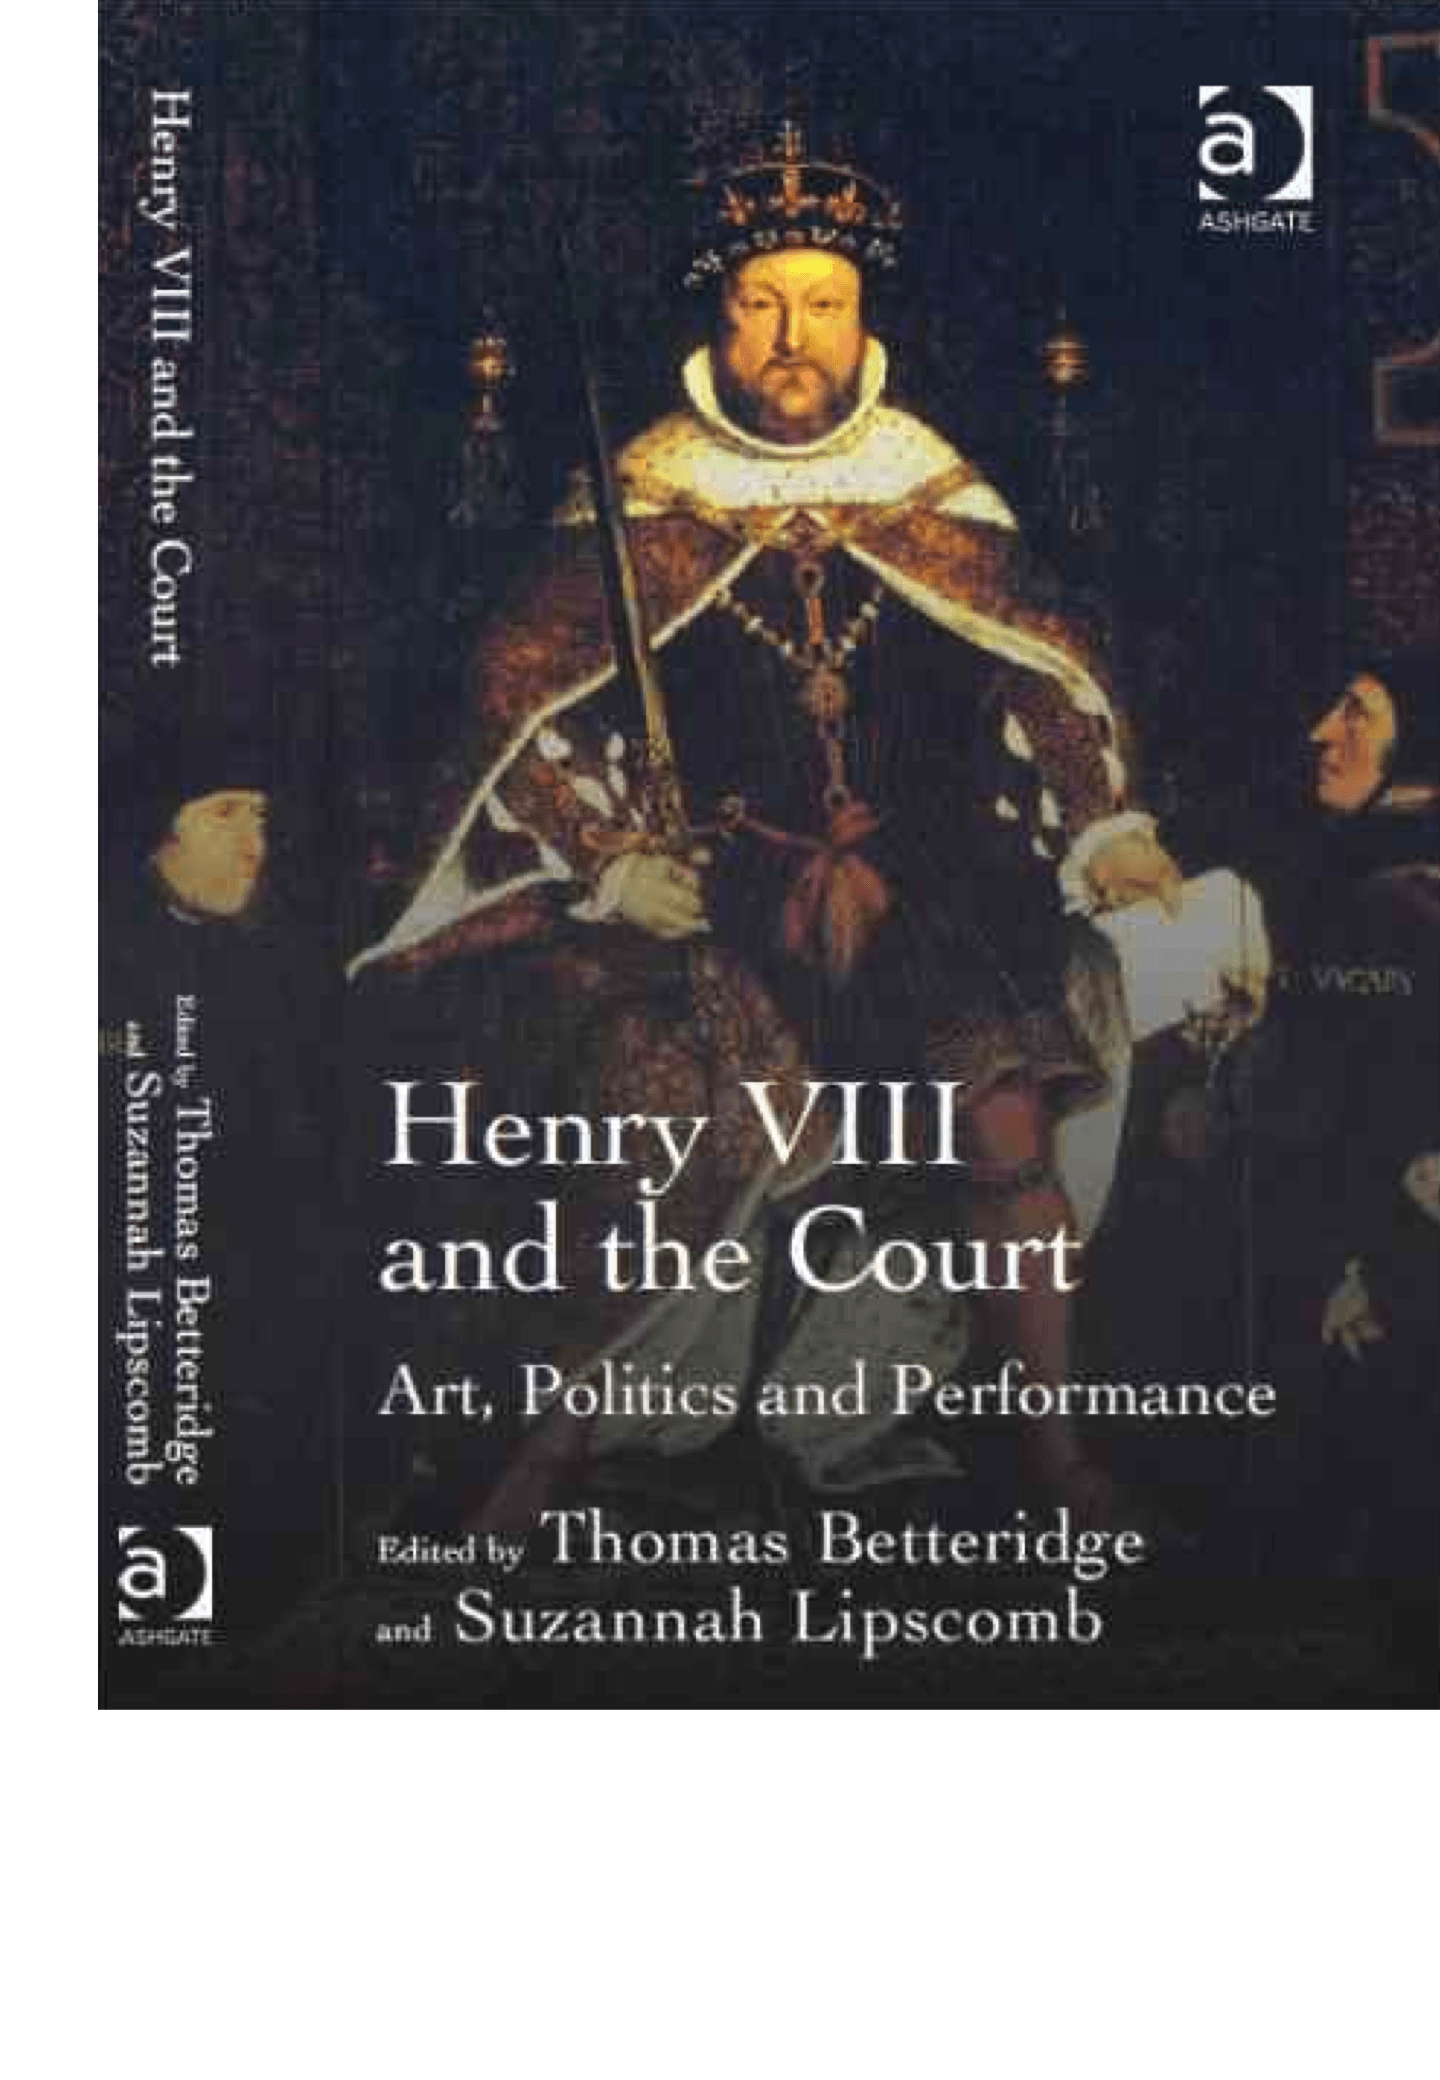 henry viii and the court art politics and performance suzannah henry viii and the court art politics and performance